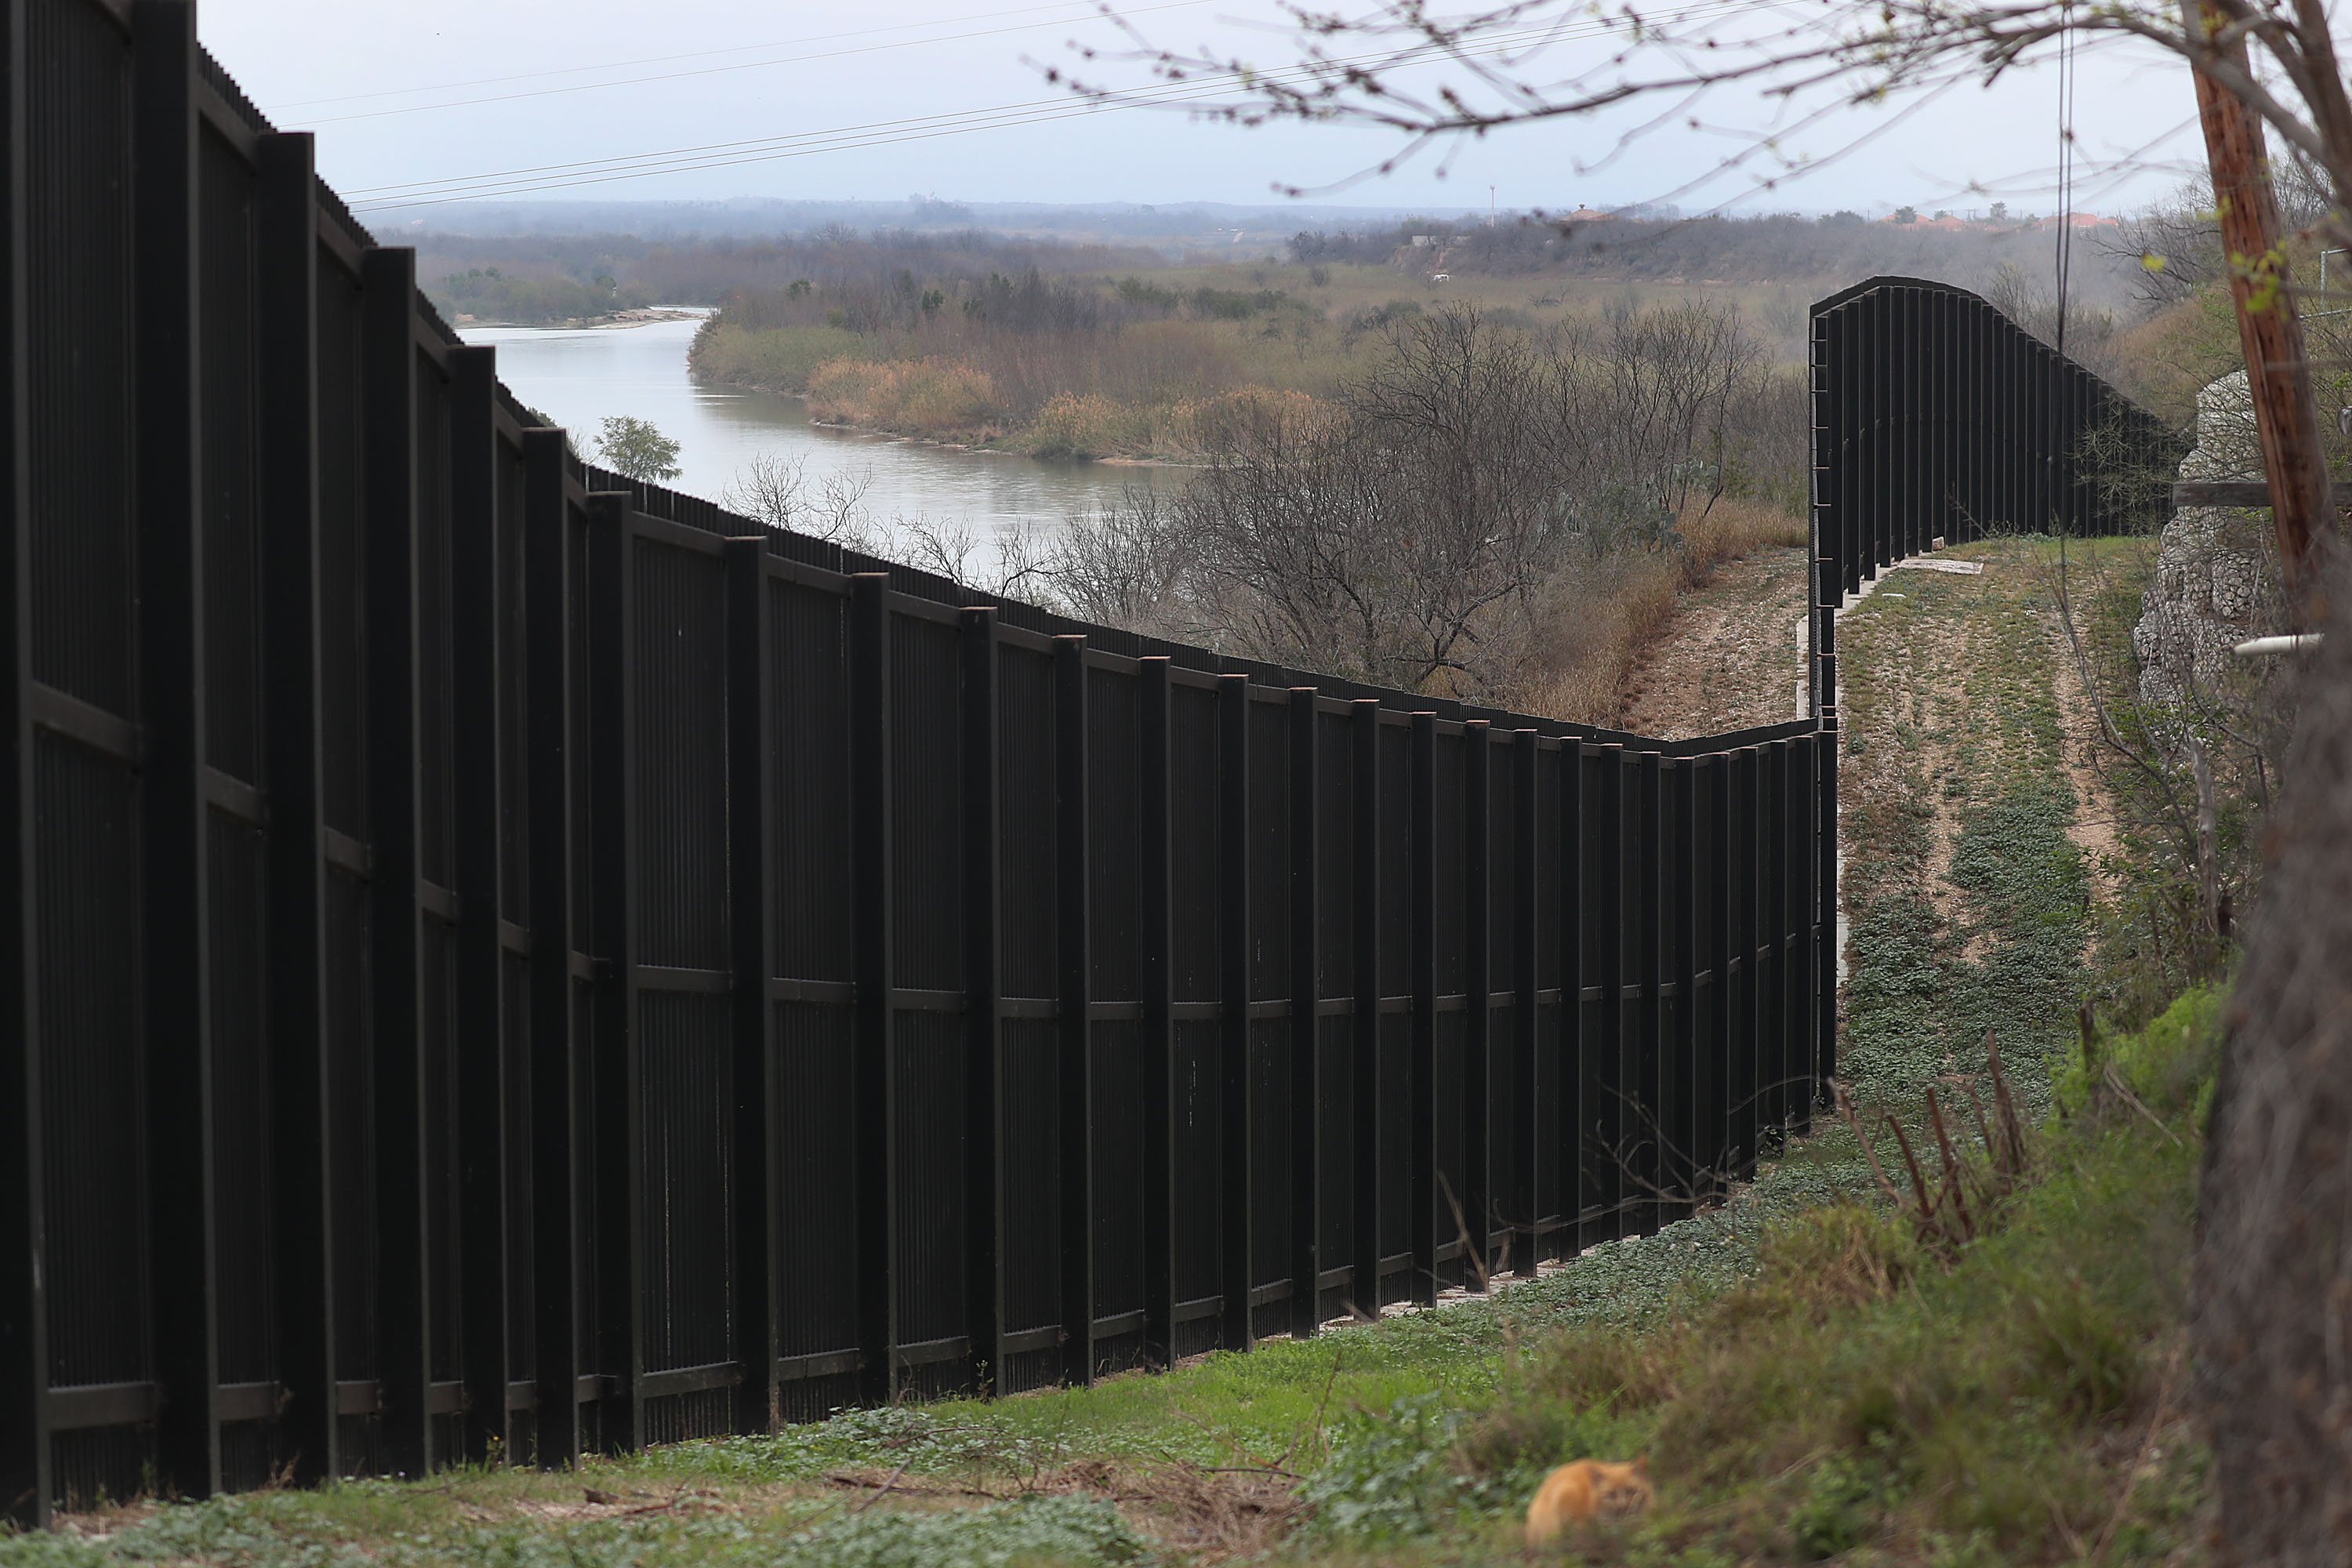 Conservative Group Ignores Judge's Order to Stop Working on Border Wall in Texas